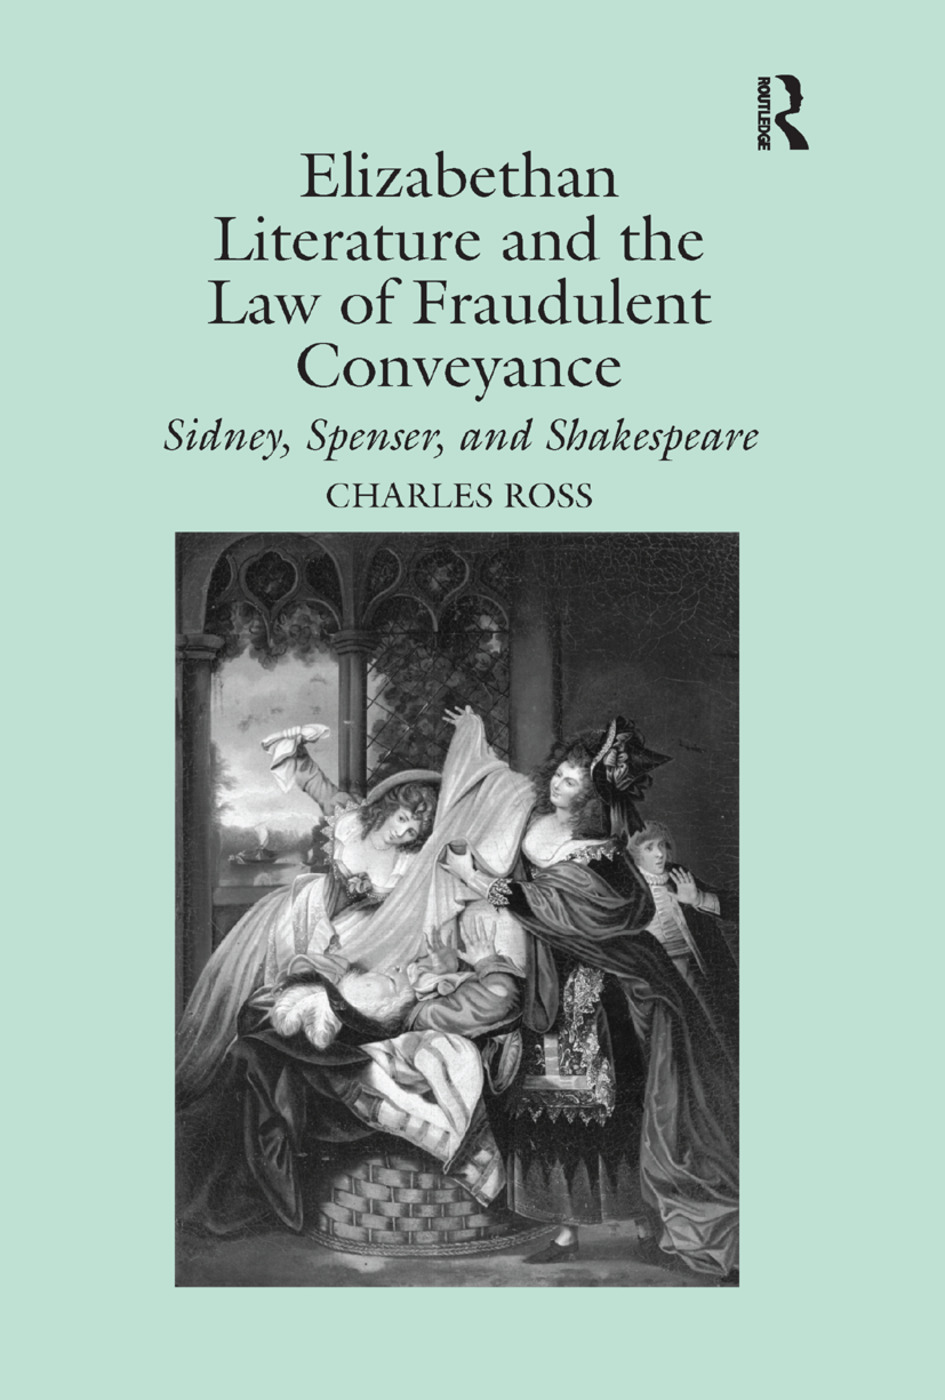 Elizabethan Literature and the Law of Fraudulent Conveyance: Sidney, Spenser, and Shakespeare, 1st Edition (Paperback) book cover